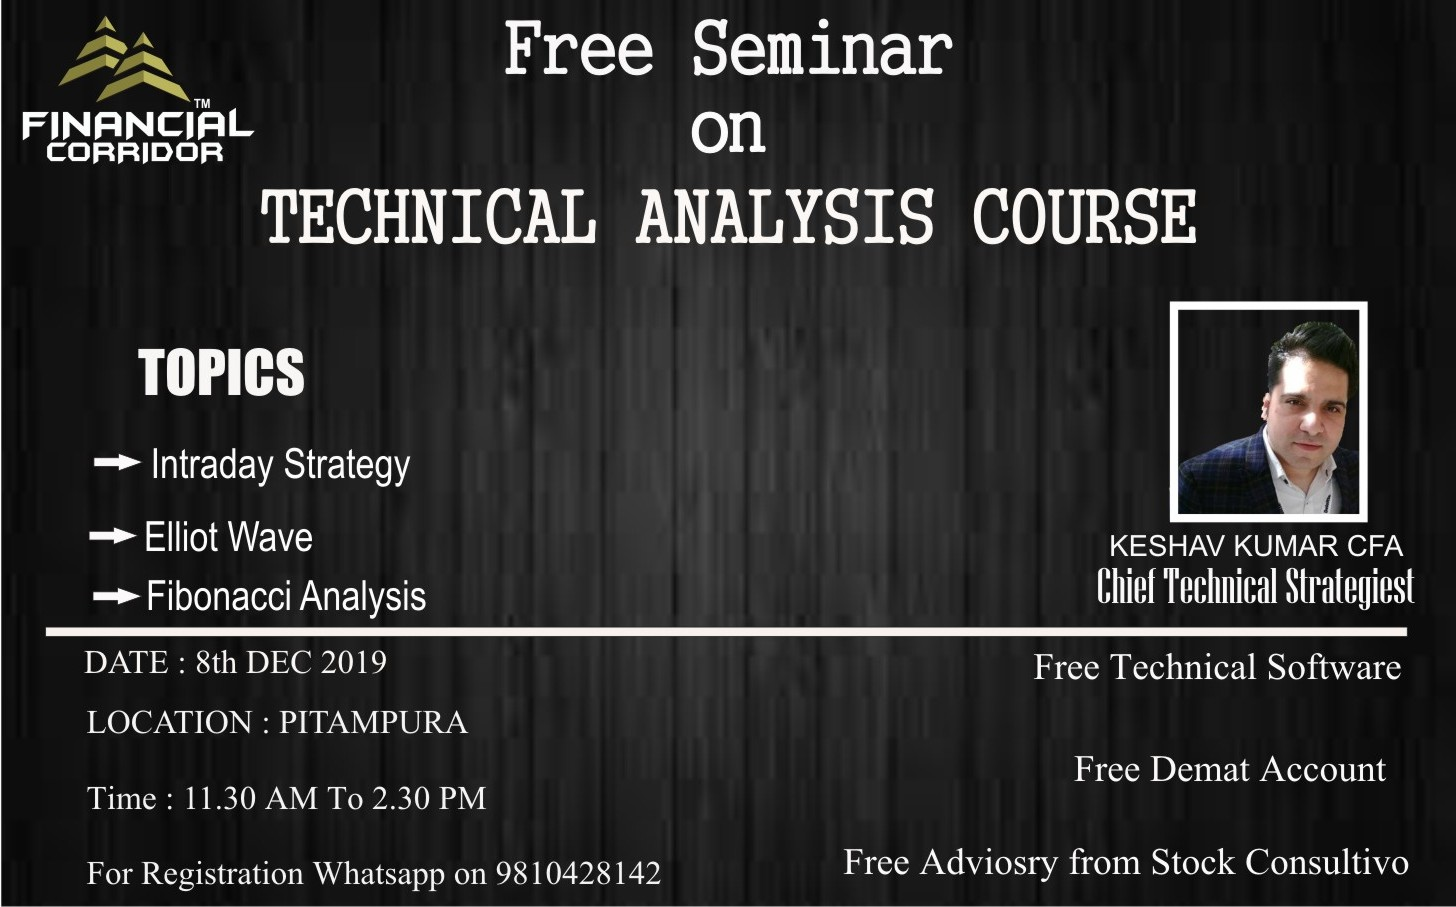 Free Seminar on Technical Analysis course, North West Delhi, Delhi, India